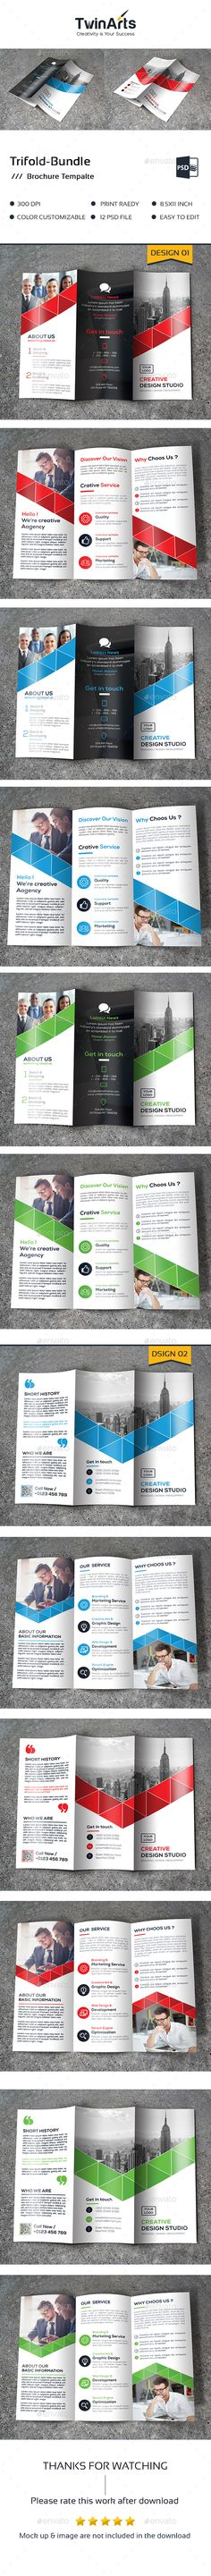 Oswald Landscape Brochure - download brochure templates for microsoft word